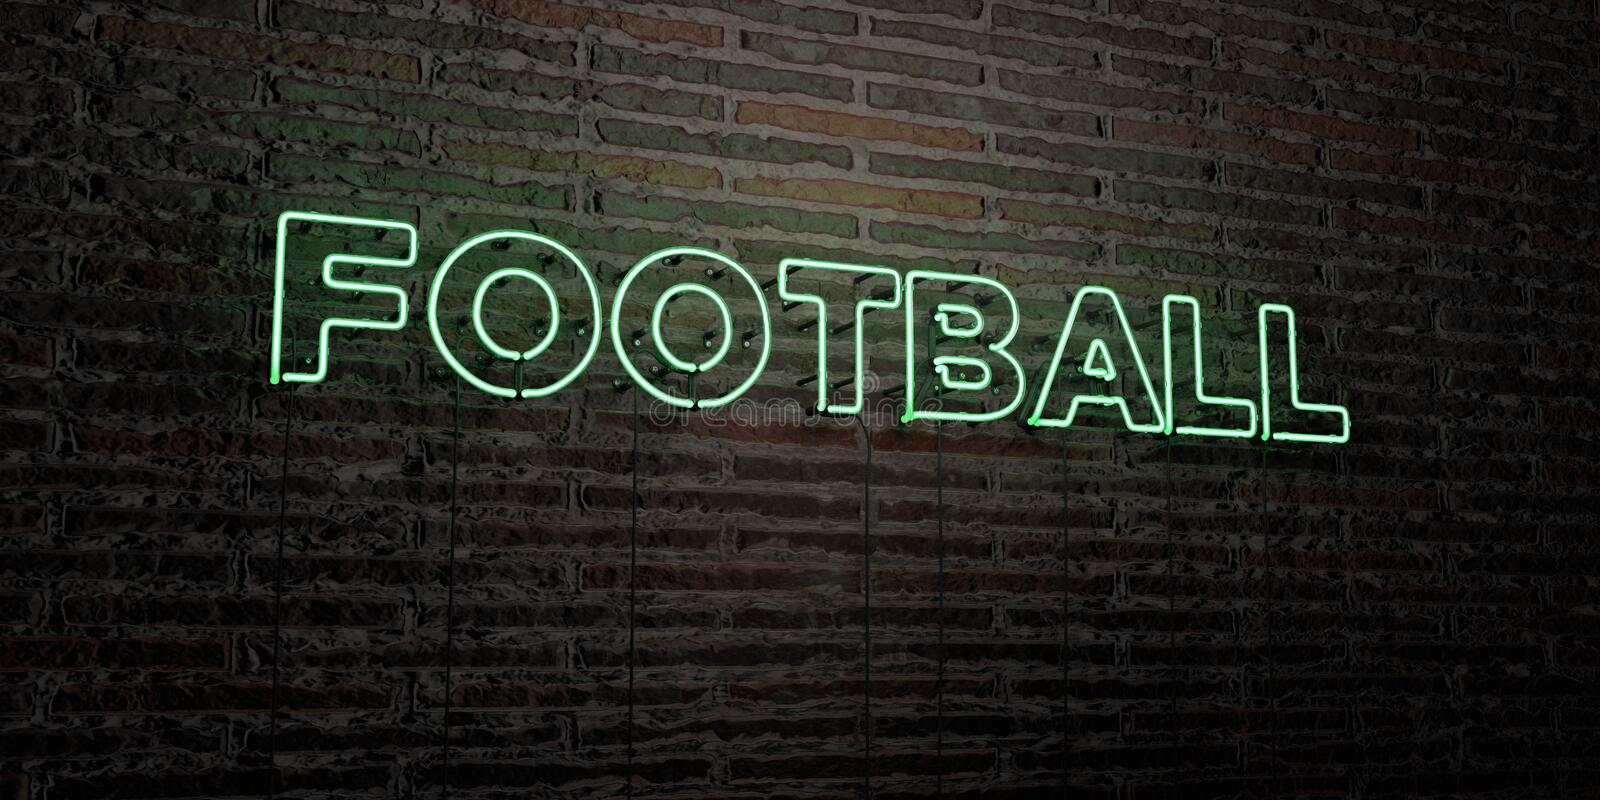 FOOTBALL -Realistic Neon Sign on Brick Wall background - 3D rendered royalty free stock image stock illustration